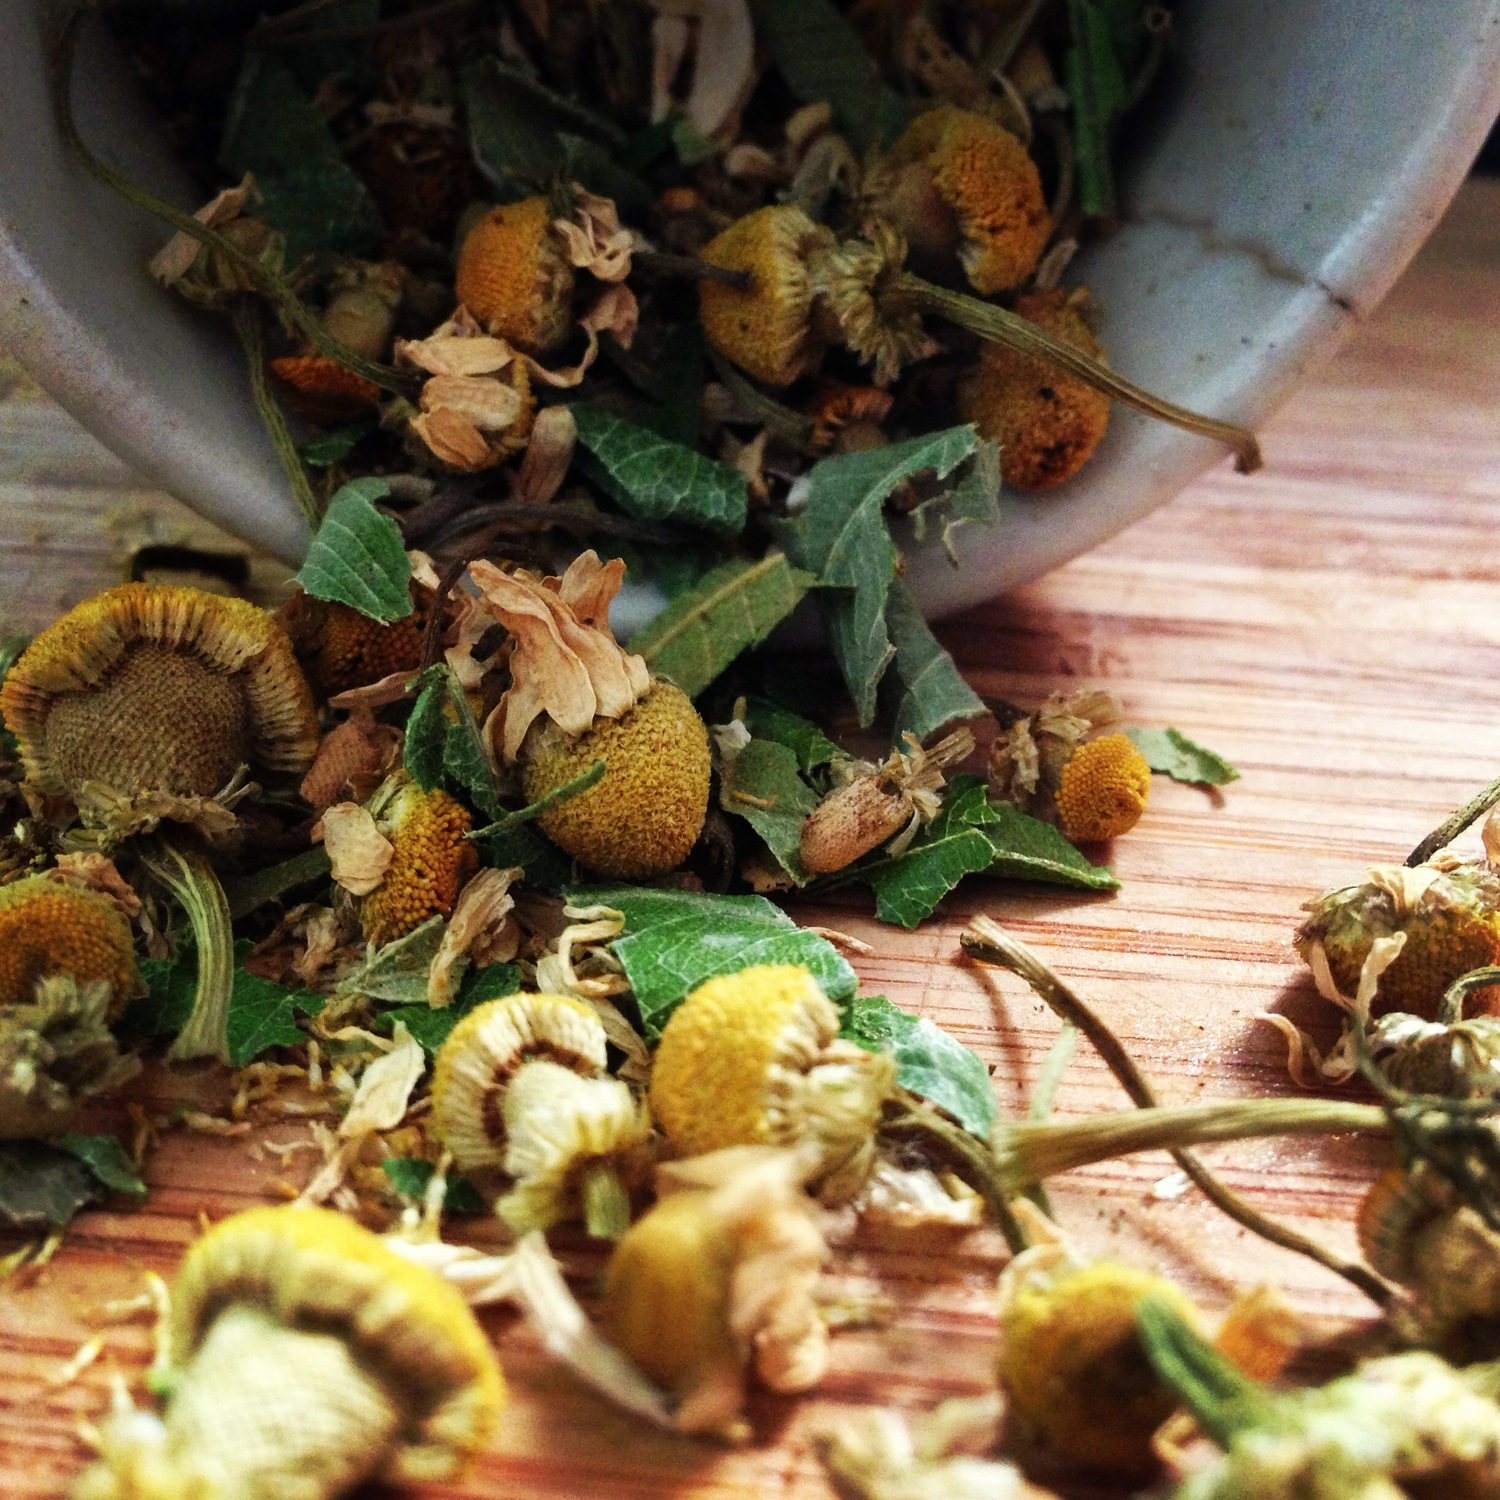 camille chamomile tea blend   Blended using locally harvested lemon myrtle from Newtown this lovely tipple will calm the nerves, refresh the soul and detox the body... Triple threat!  Enjoy straight up, no milk.  INGREDIENTS & INFO   Chamomile, lemon myrtle, ginger